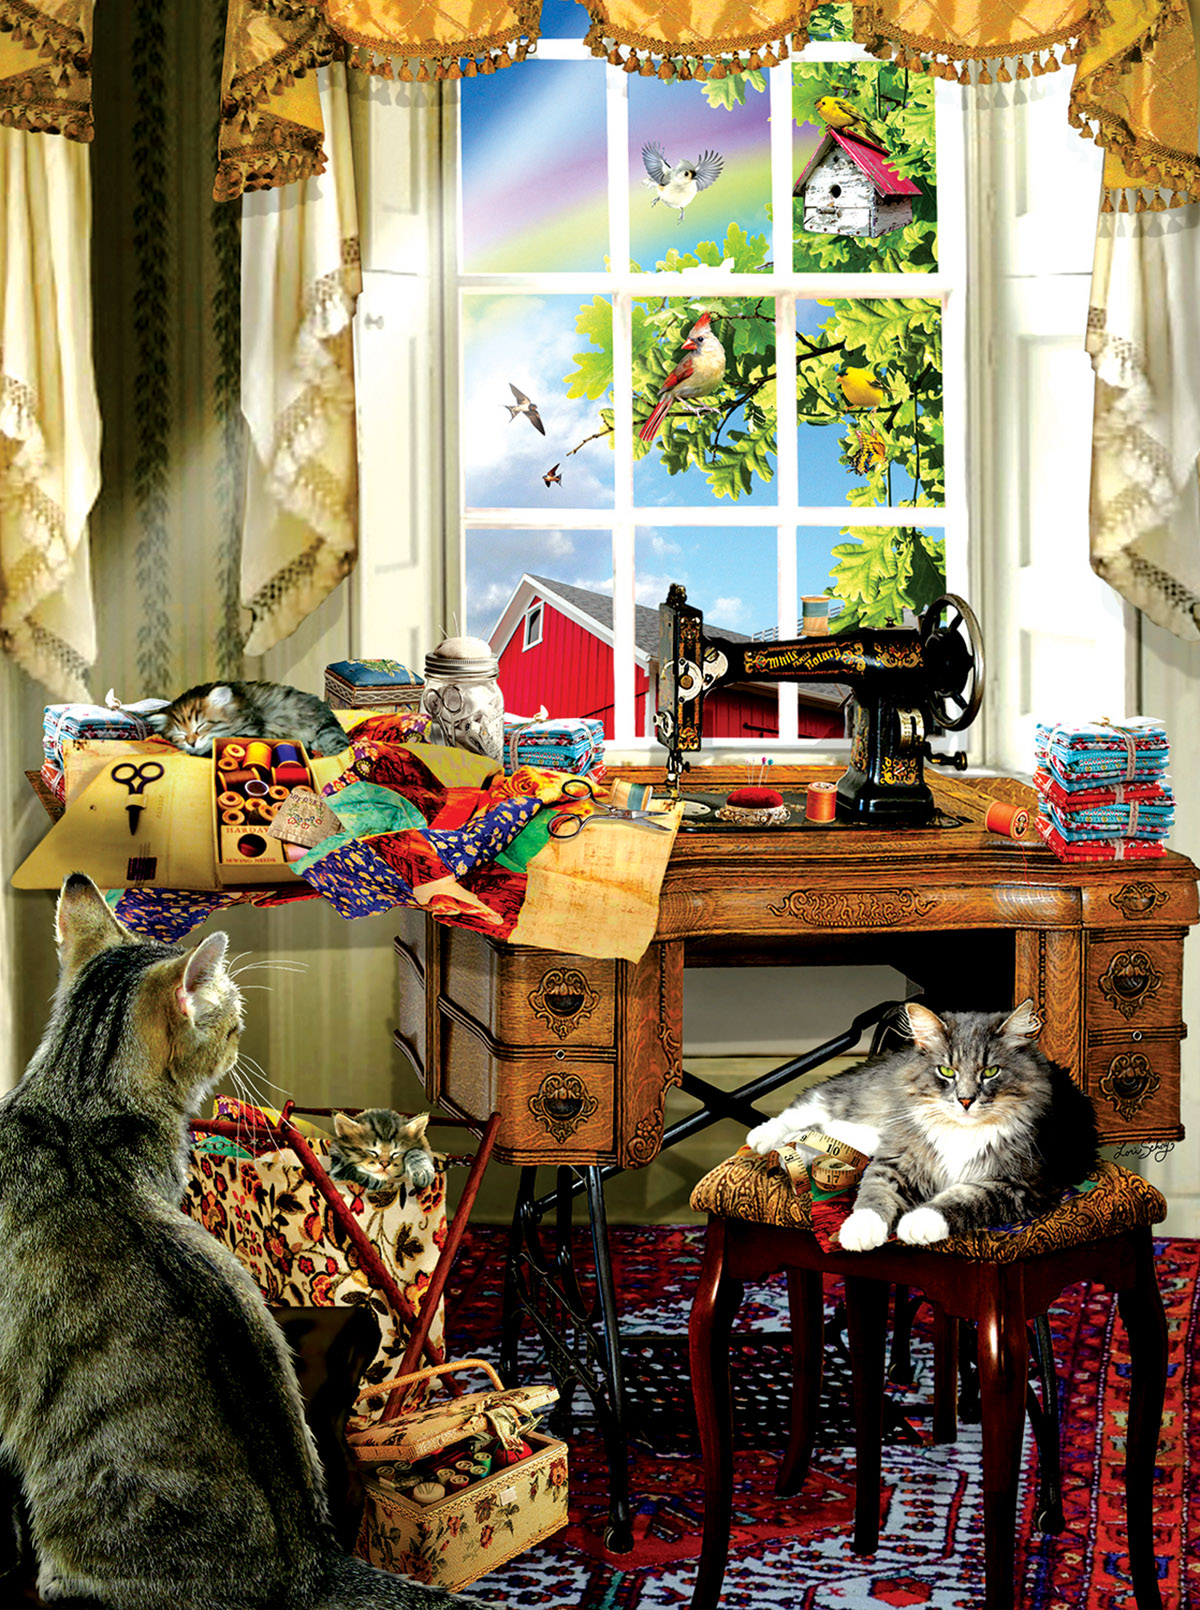 The Sewing Room Jigsaw Puzzle  PuzzleWarehousecom